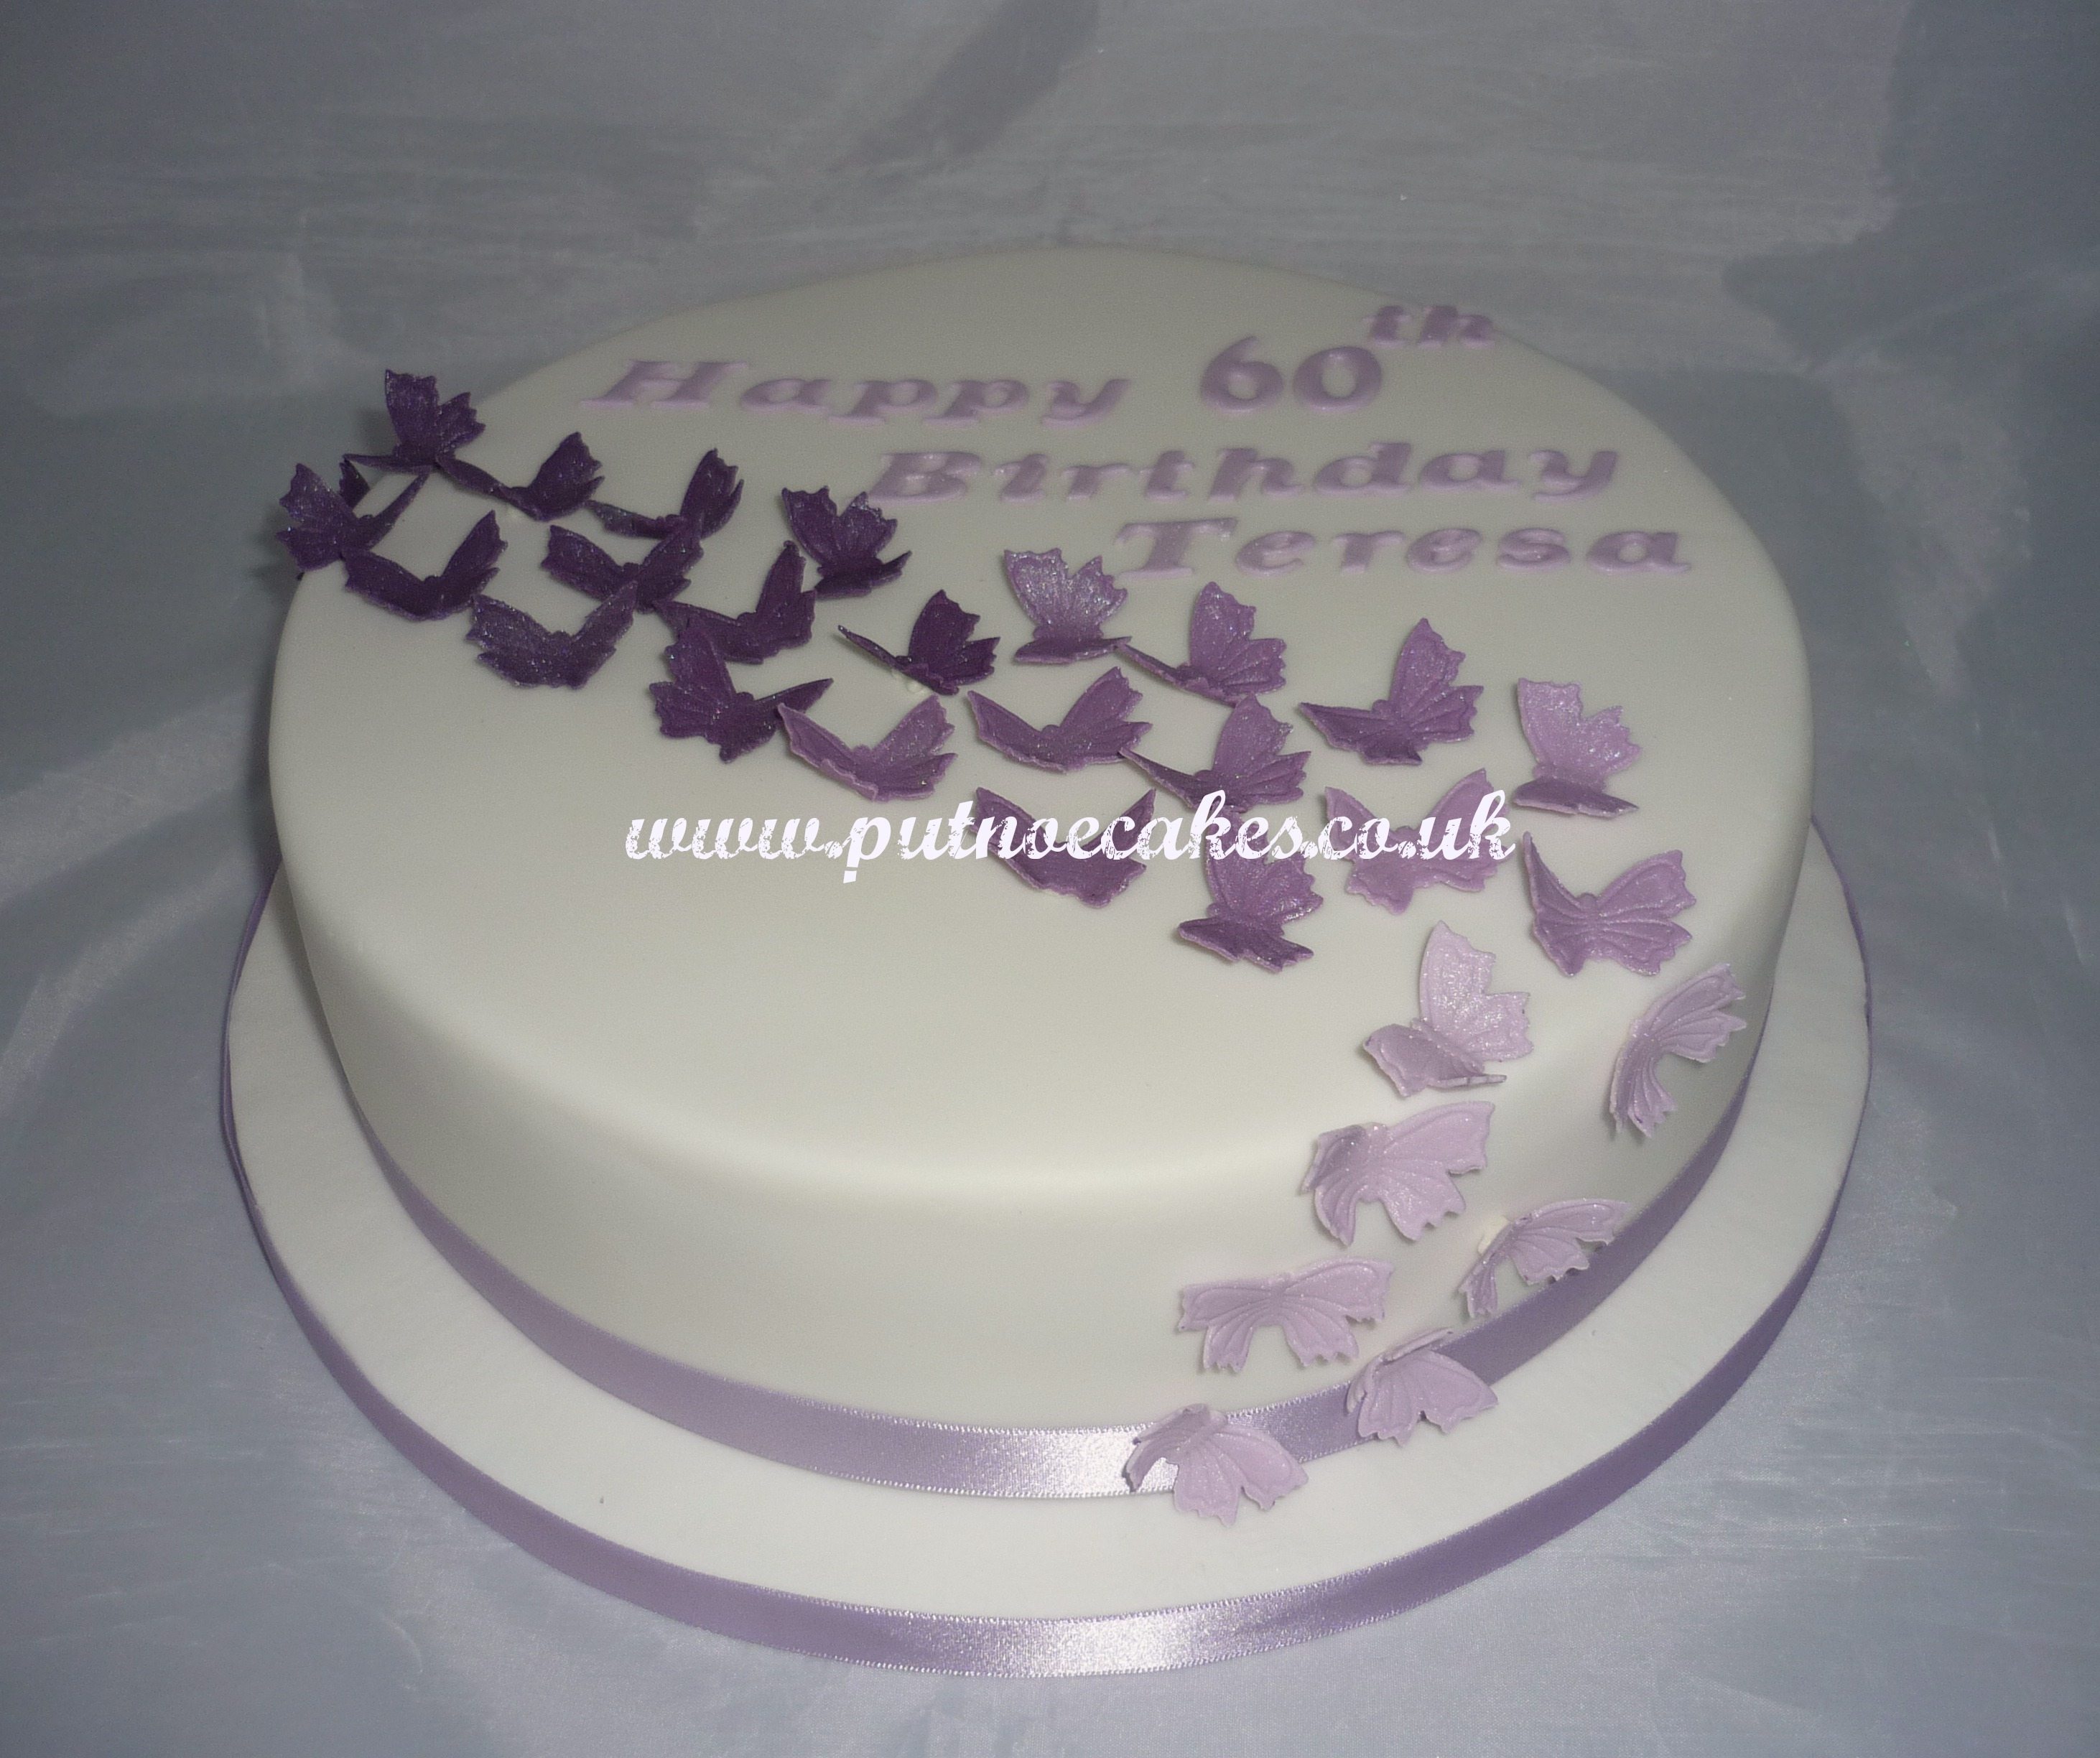 60 And Fabulous Birthday Cake Topper For Women Classy 60th